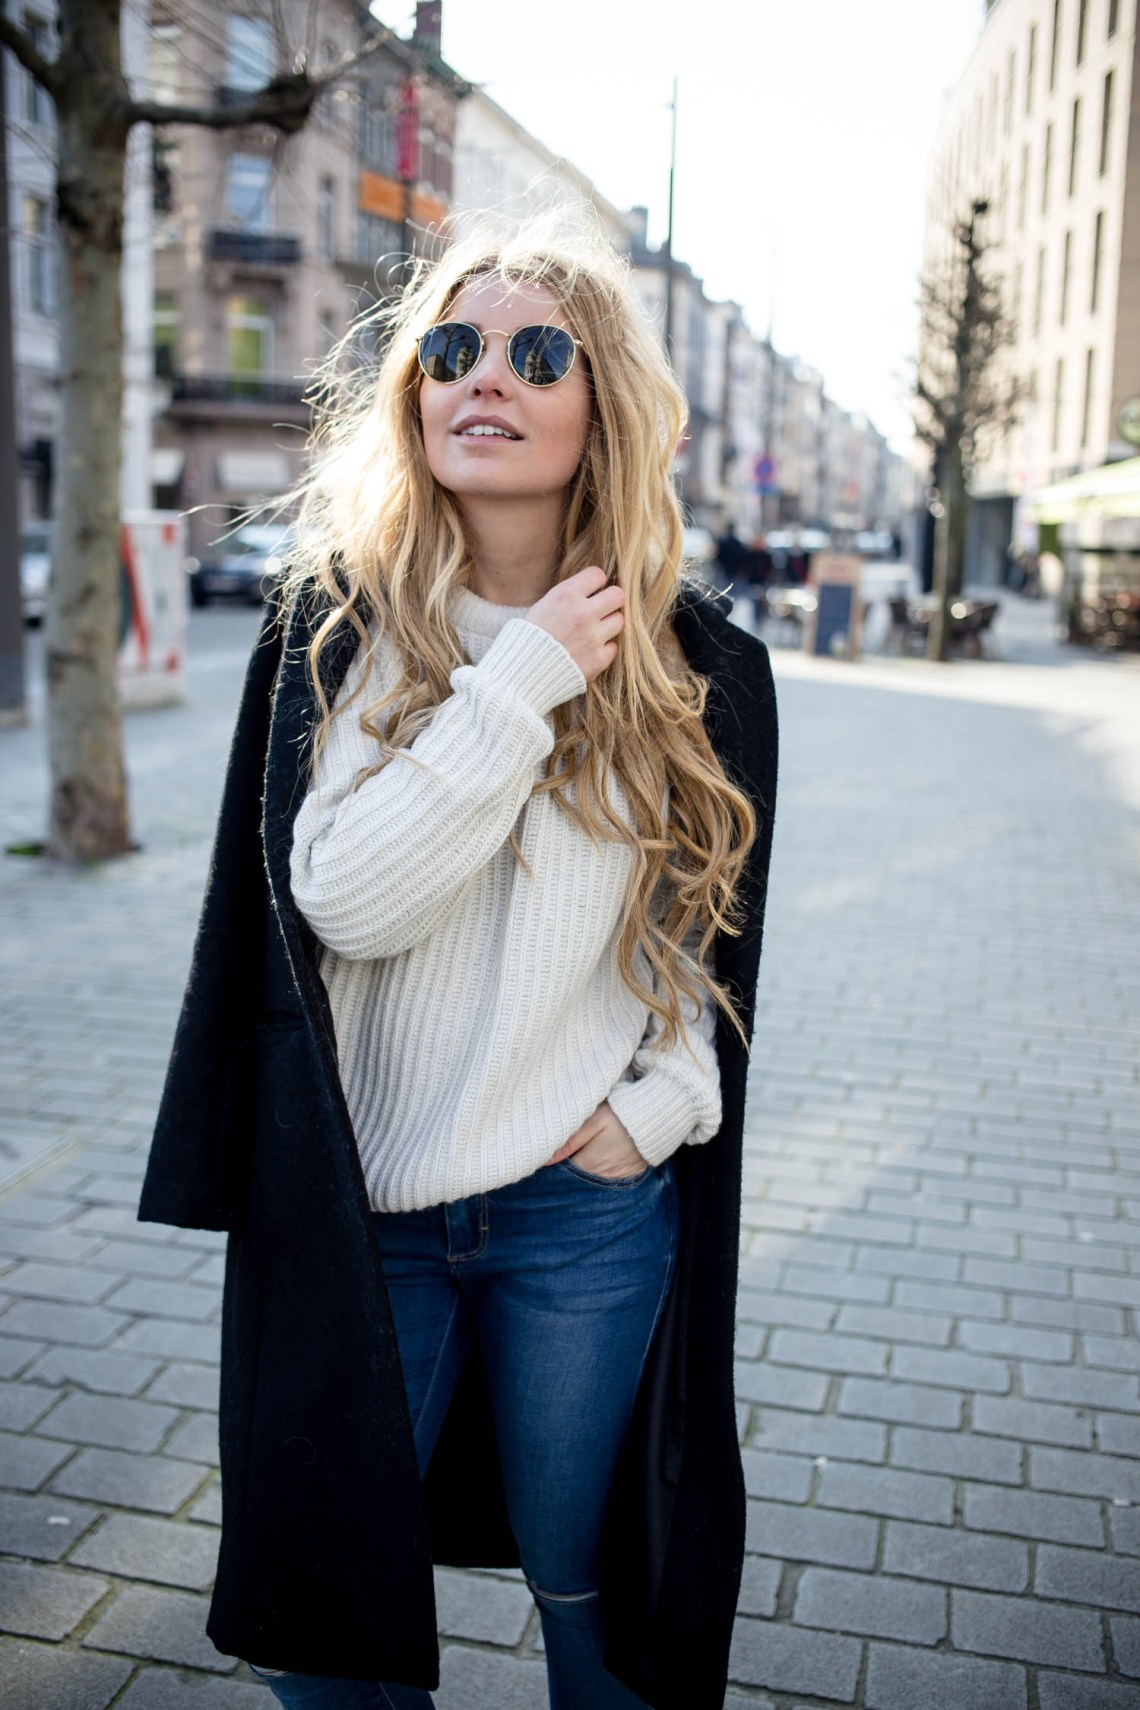 Elien Migalski Streetstyle Outfit-10